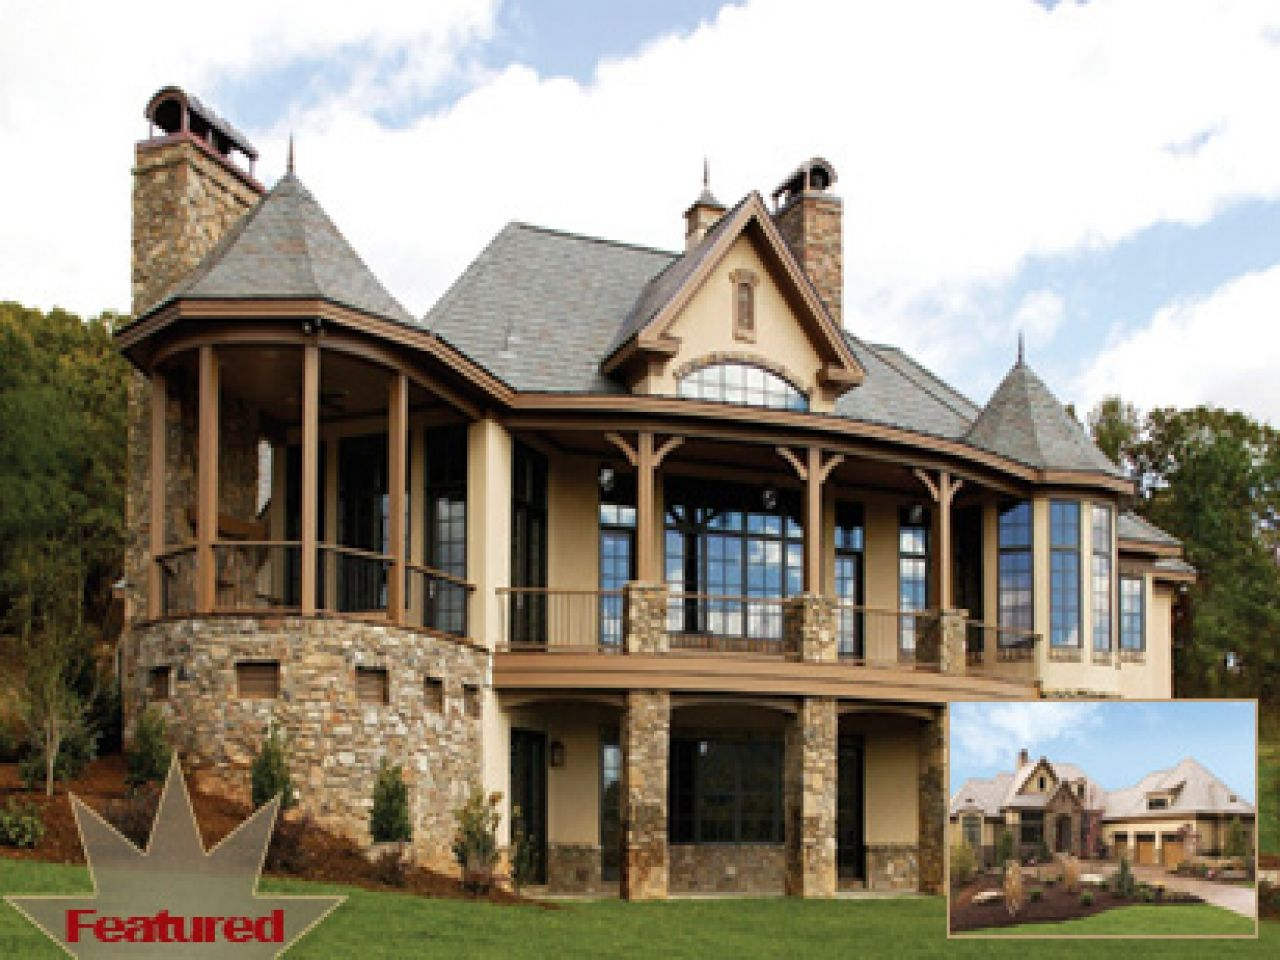 House Plans Walkout Basement French Country Best European Photos Castle House My Dream Home Dream House